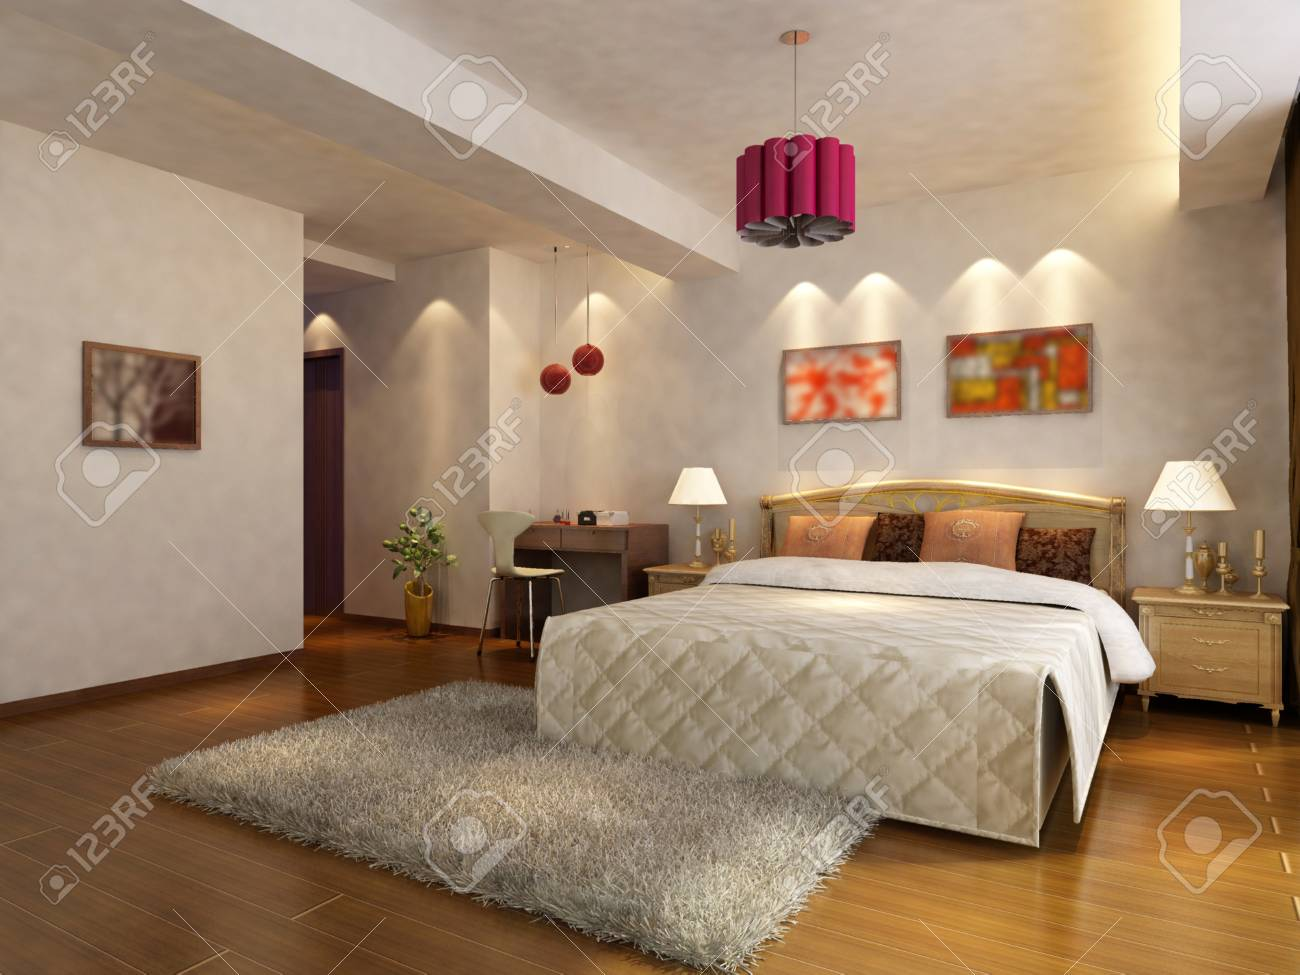 rendering of home interior focused on bed room Stock Photo - 9535072